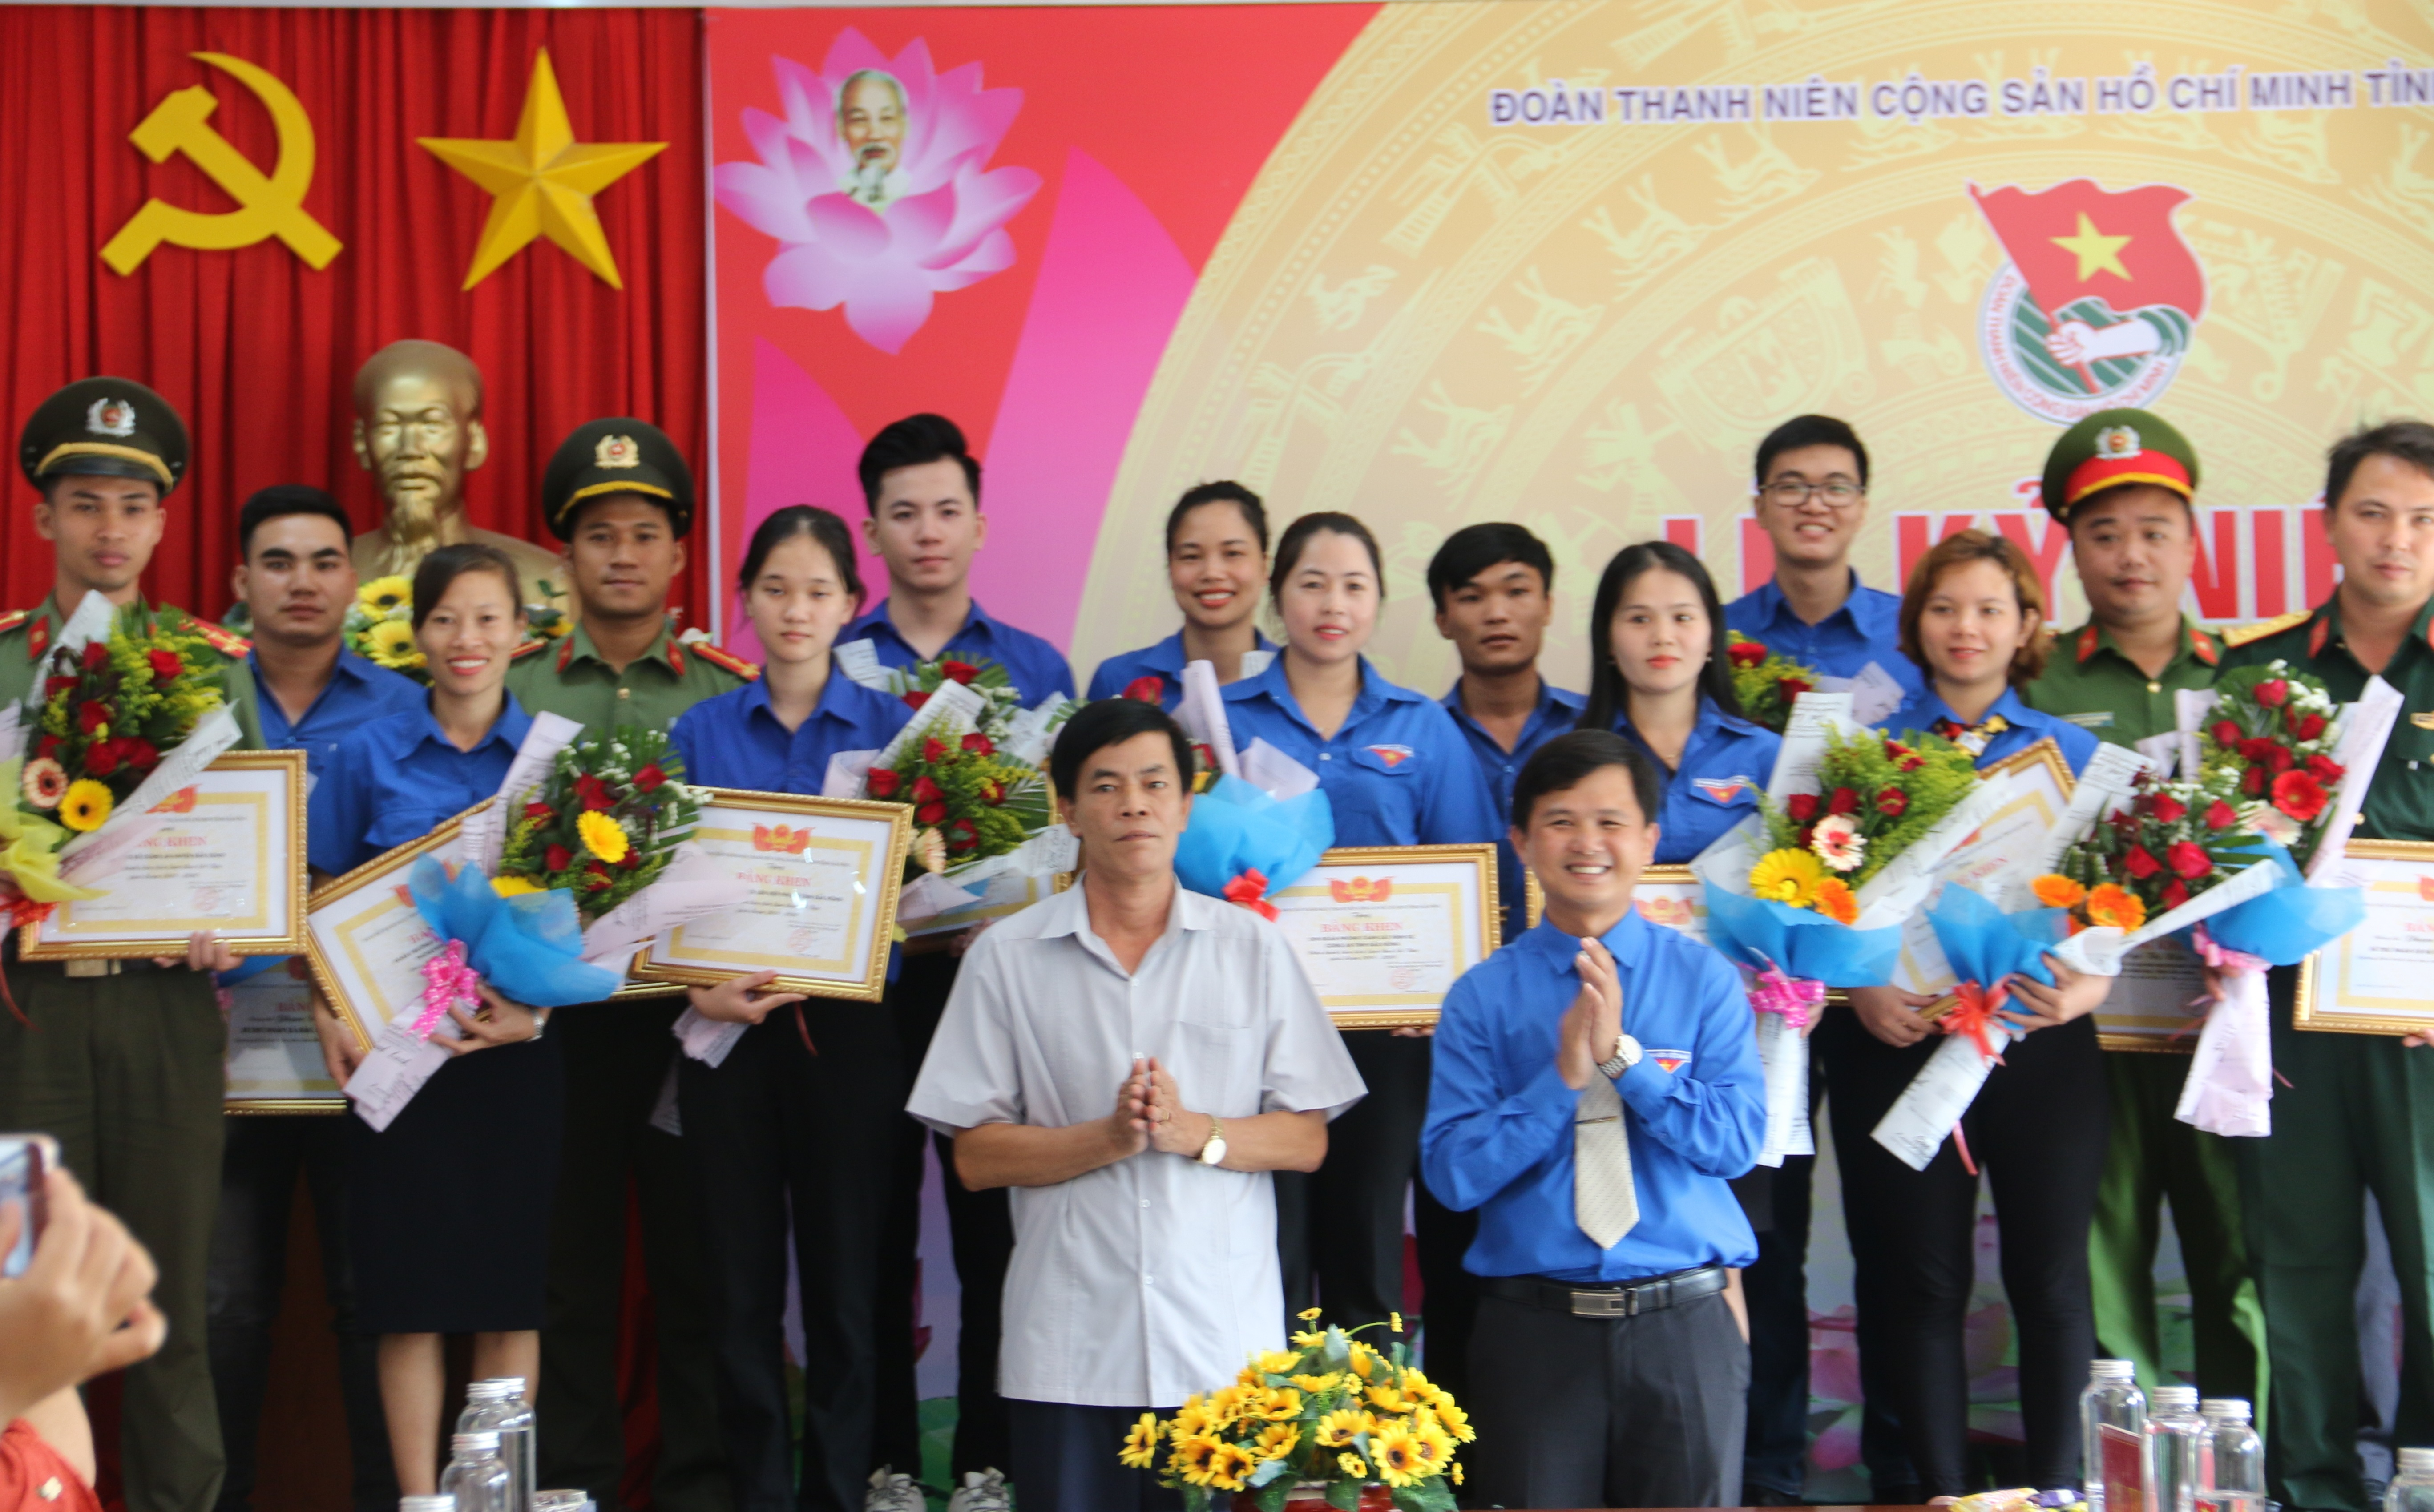 Dak Nong honors 29 collectives and individuals studying and following President Ho Chi Minh's example